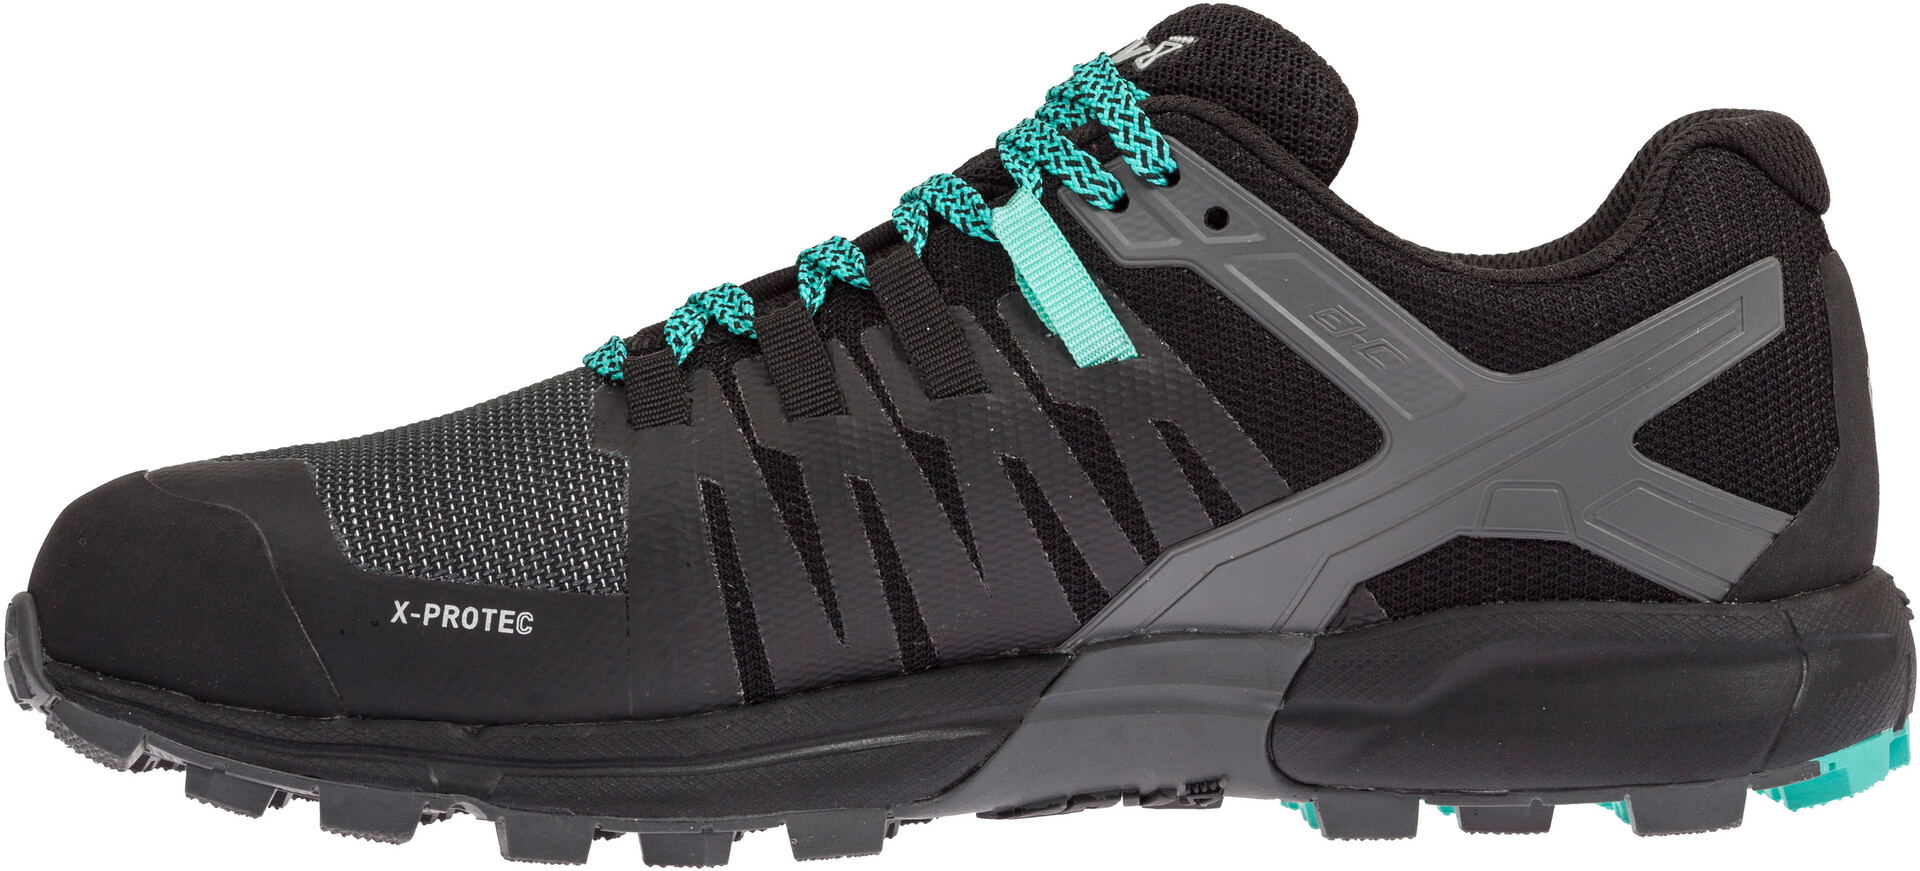 Damen Shoes Gtx Blackteal 315 Running 8 Roclite Inov 0w8nvmN